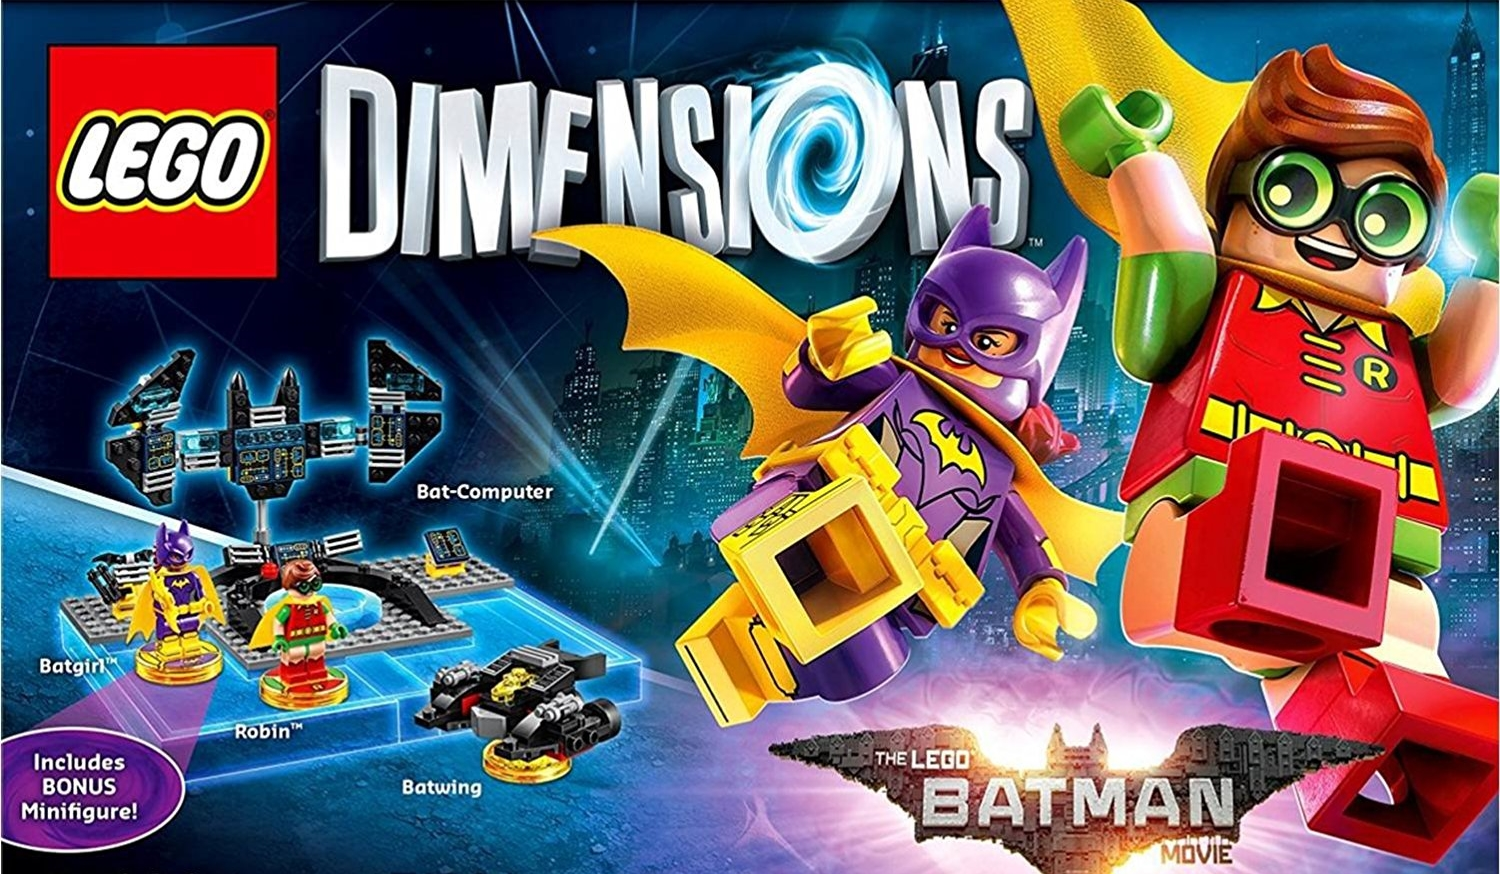 Lego Dimensions The Lego Batman Movie Story Pack review – plus Lego Knight Rider and more